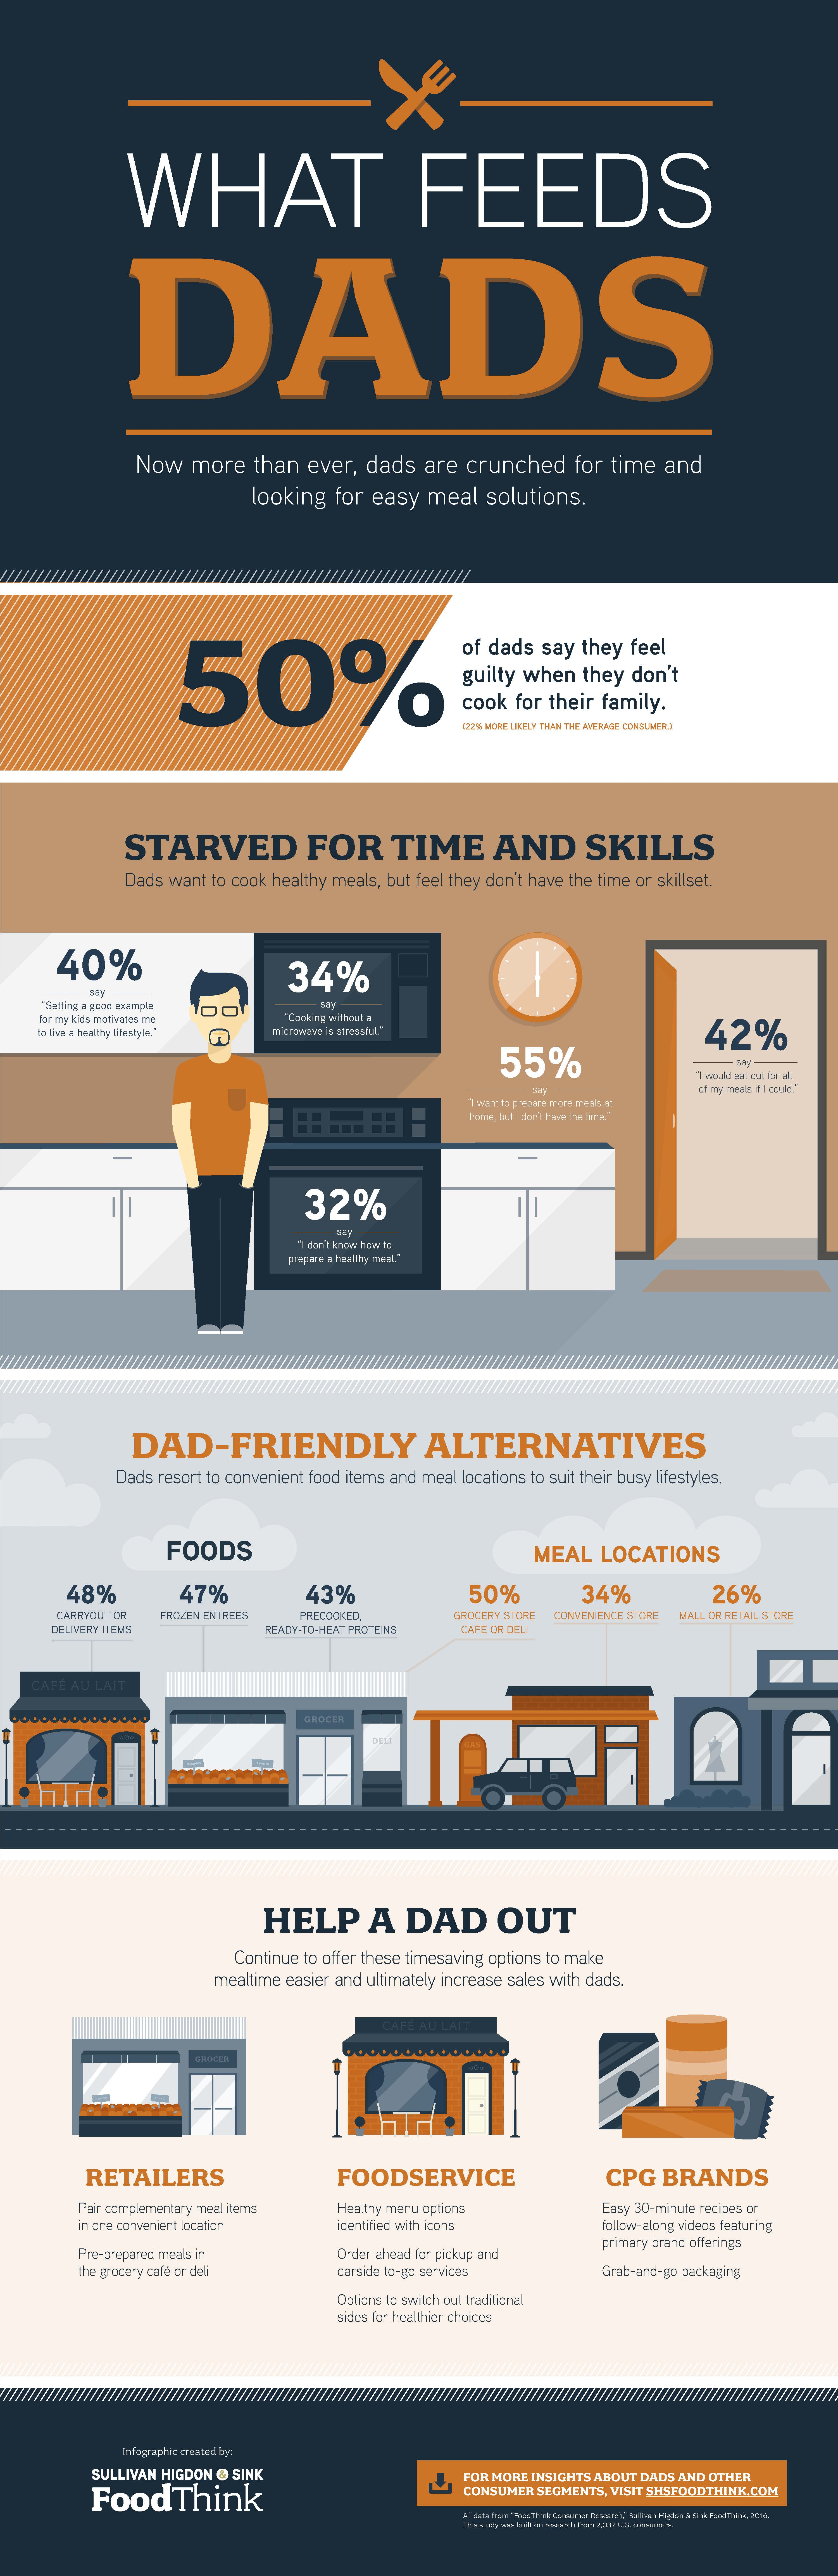 What Feeds Dads